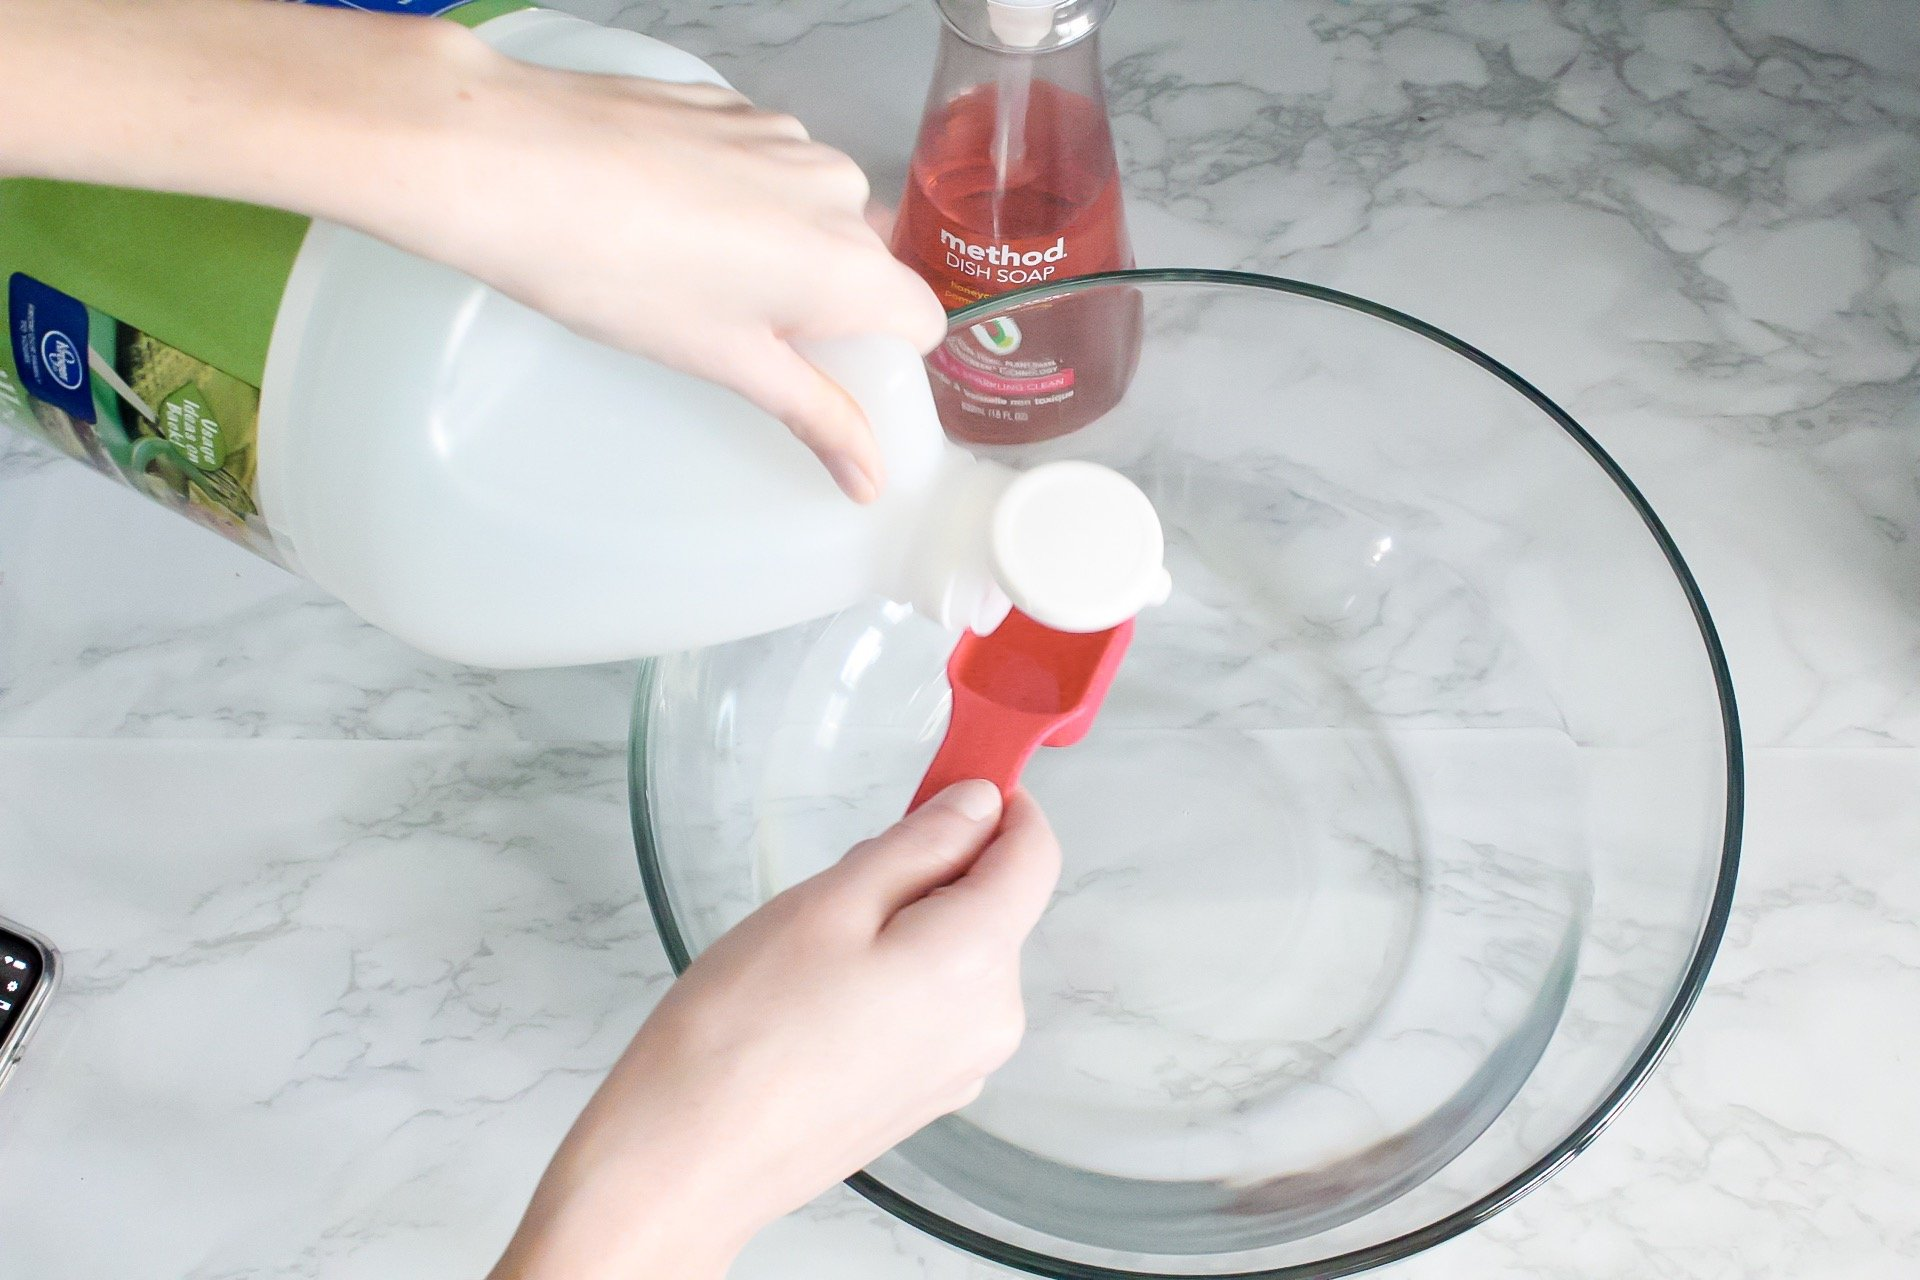 Measuring vinegar into tablespoon to put into homemade cleaning solution